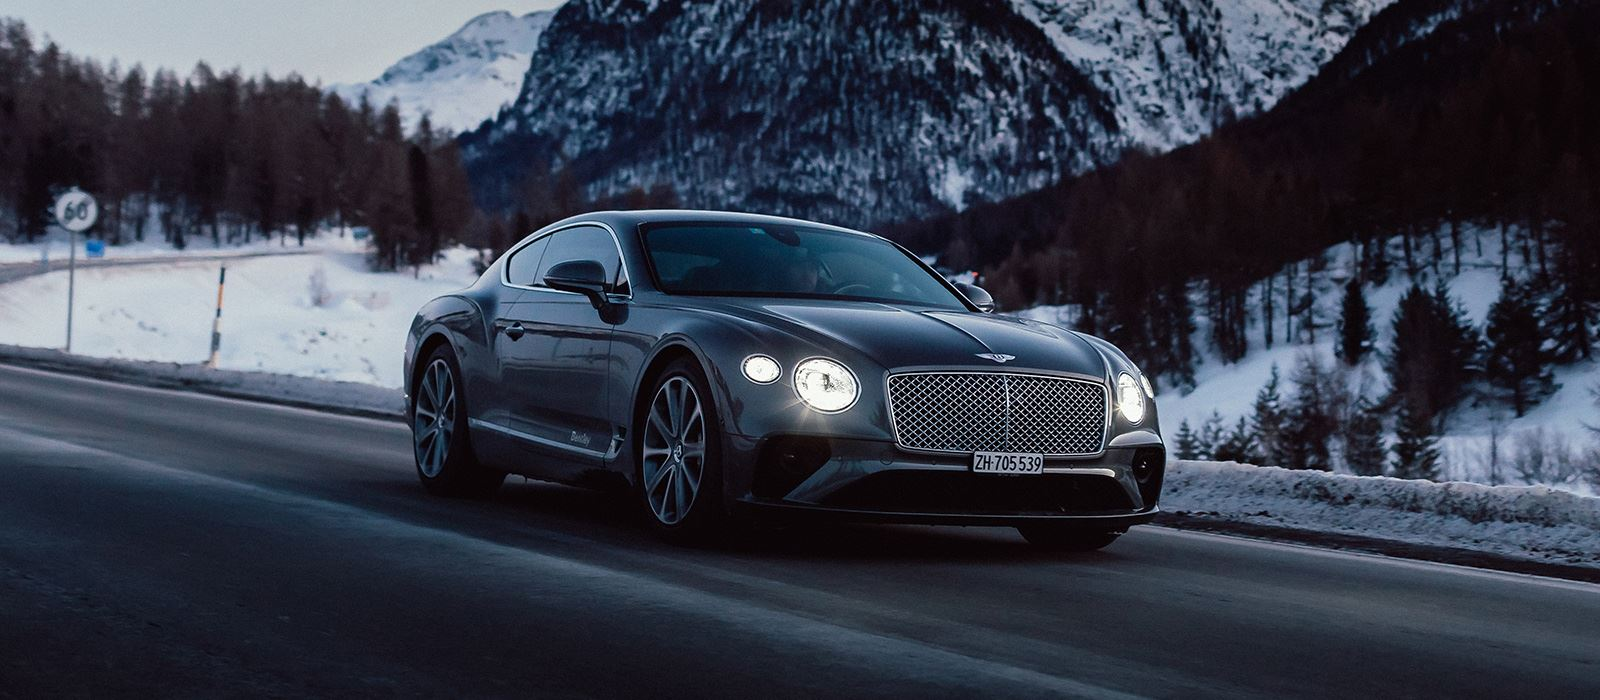 Bentley By Night